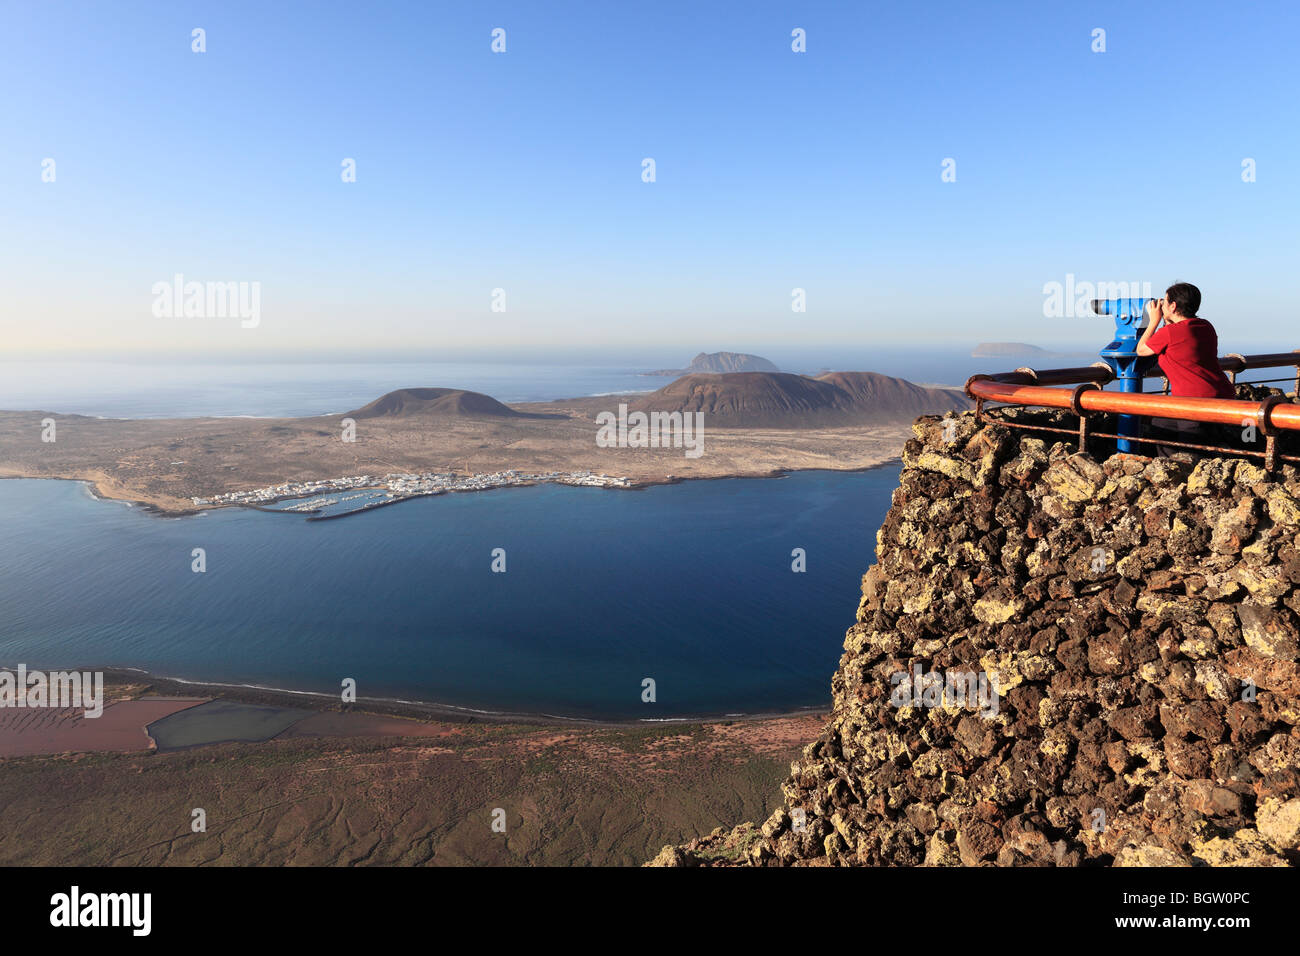 La Graciosa Island, view from Mirador del Rio, Lanzarote, Canary Islands, Spain, Europe Stock Photo